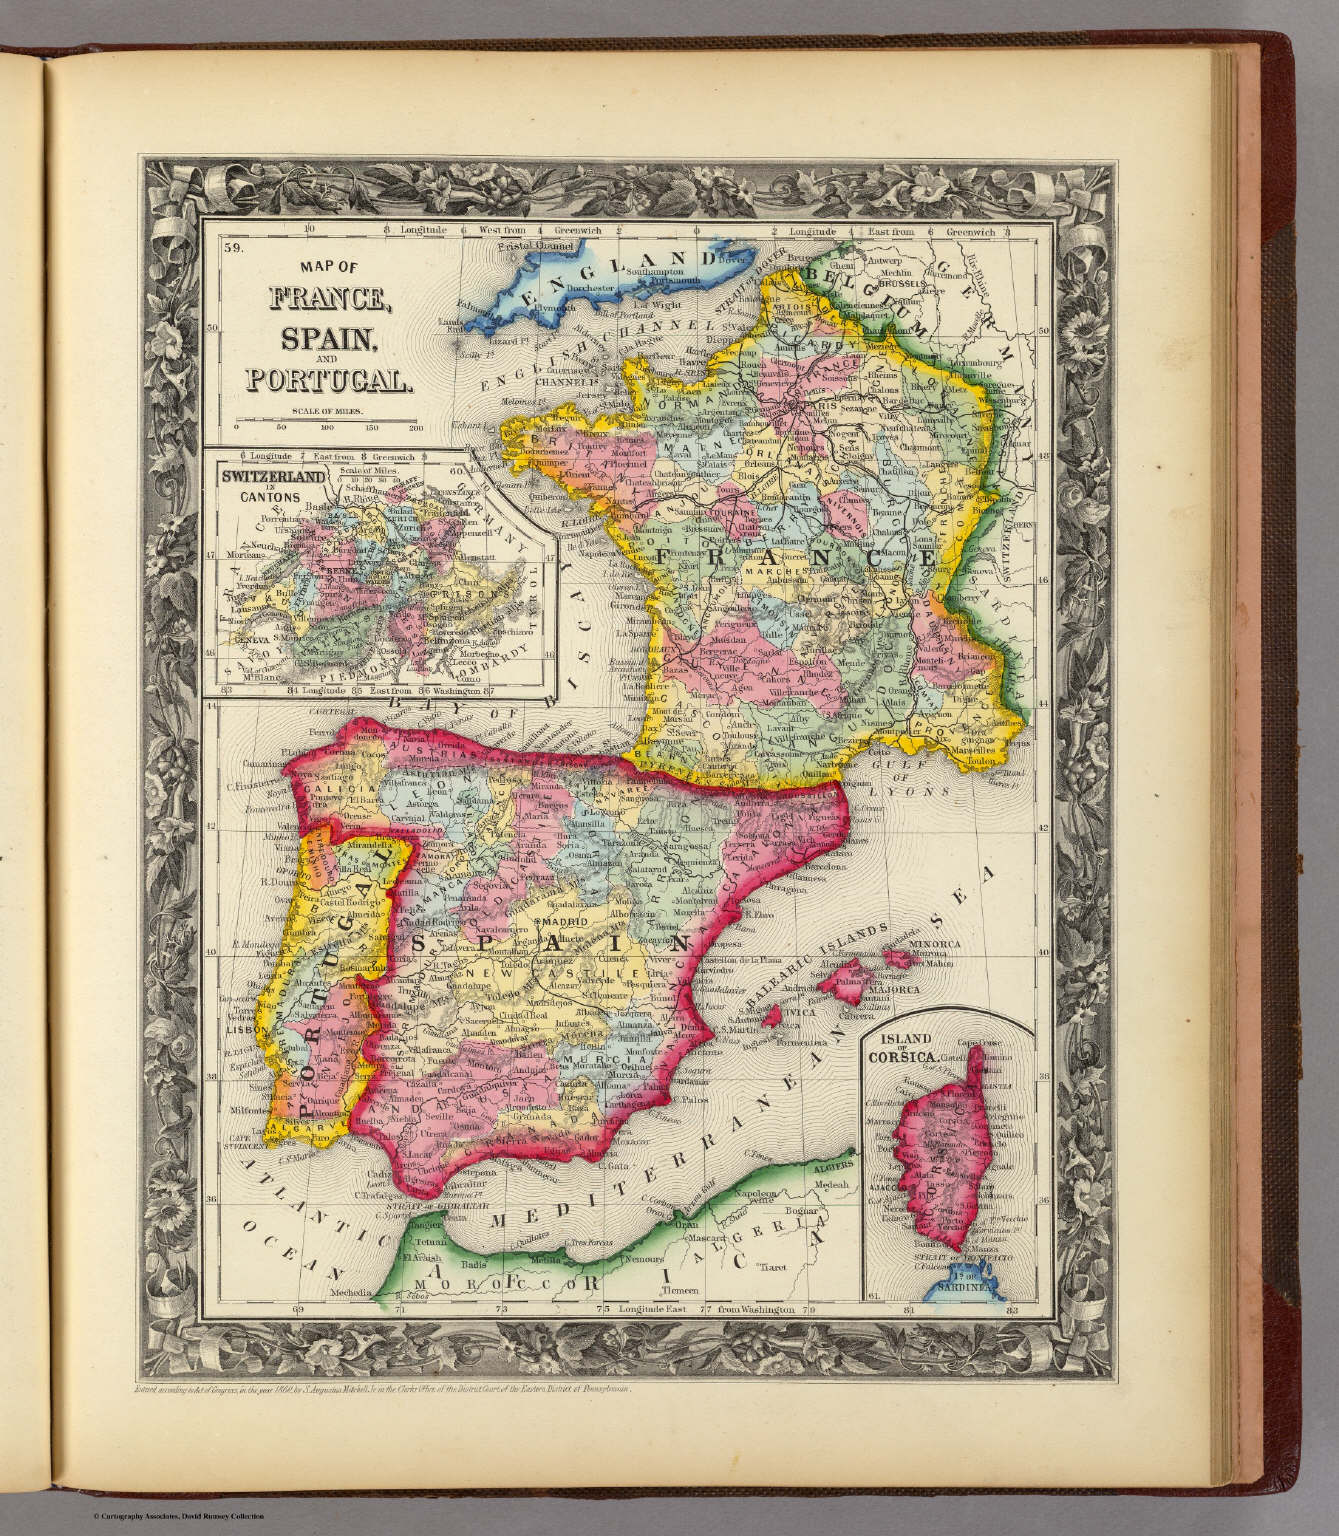 Map Of France  Spain  And Portugal    David Rumsey Historical Map     Map Of France  Spain  And Portugal